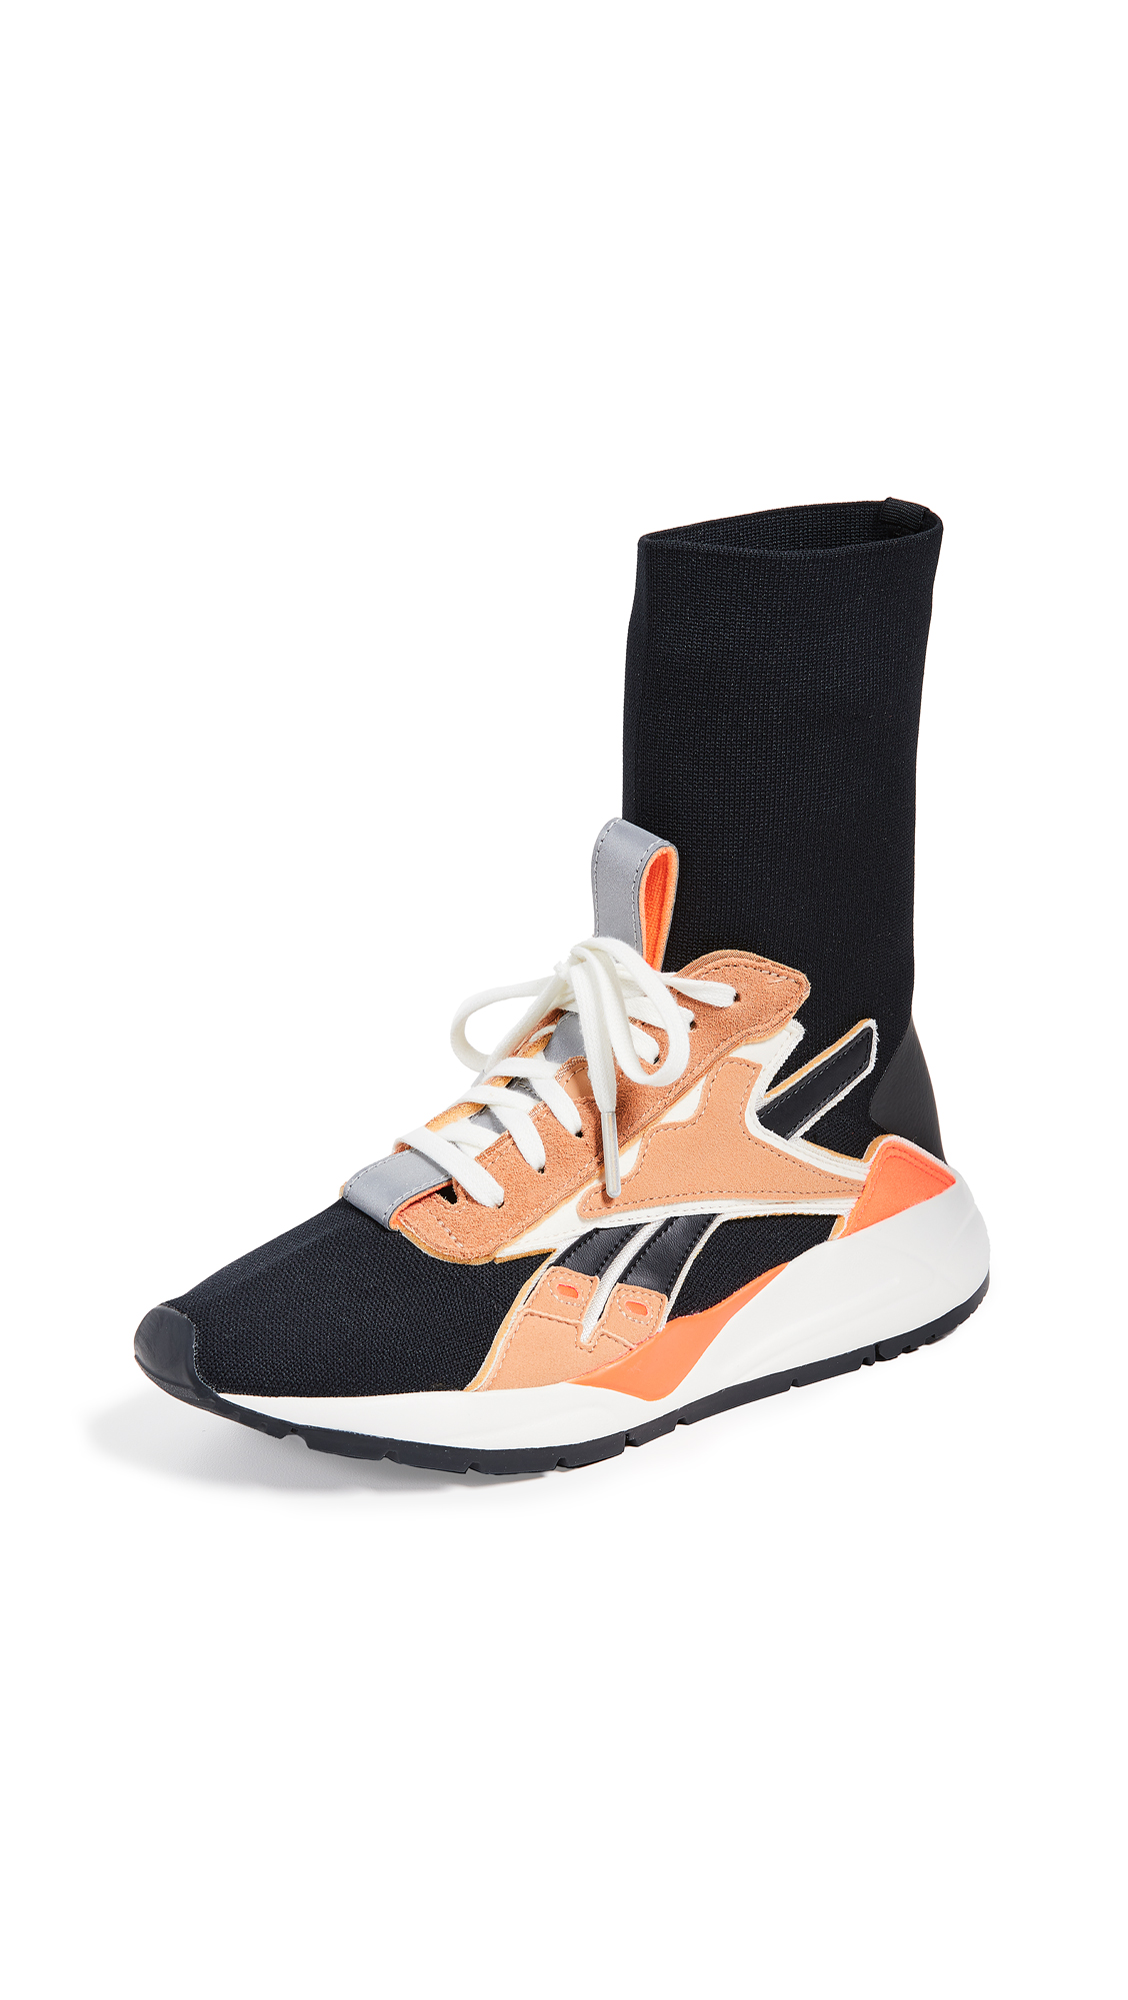 Reebok x Victoria Beckham VB Bolton Sock Sneakers - Black/Orange/Sahara/White